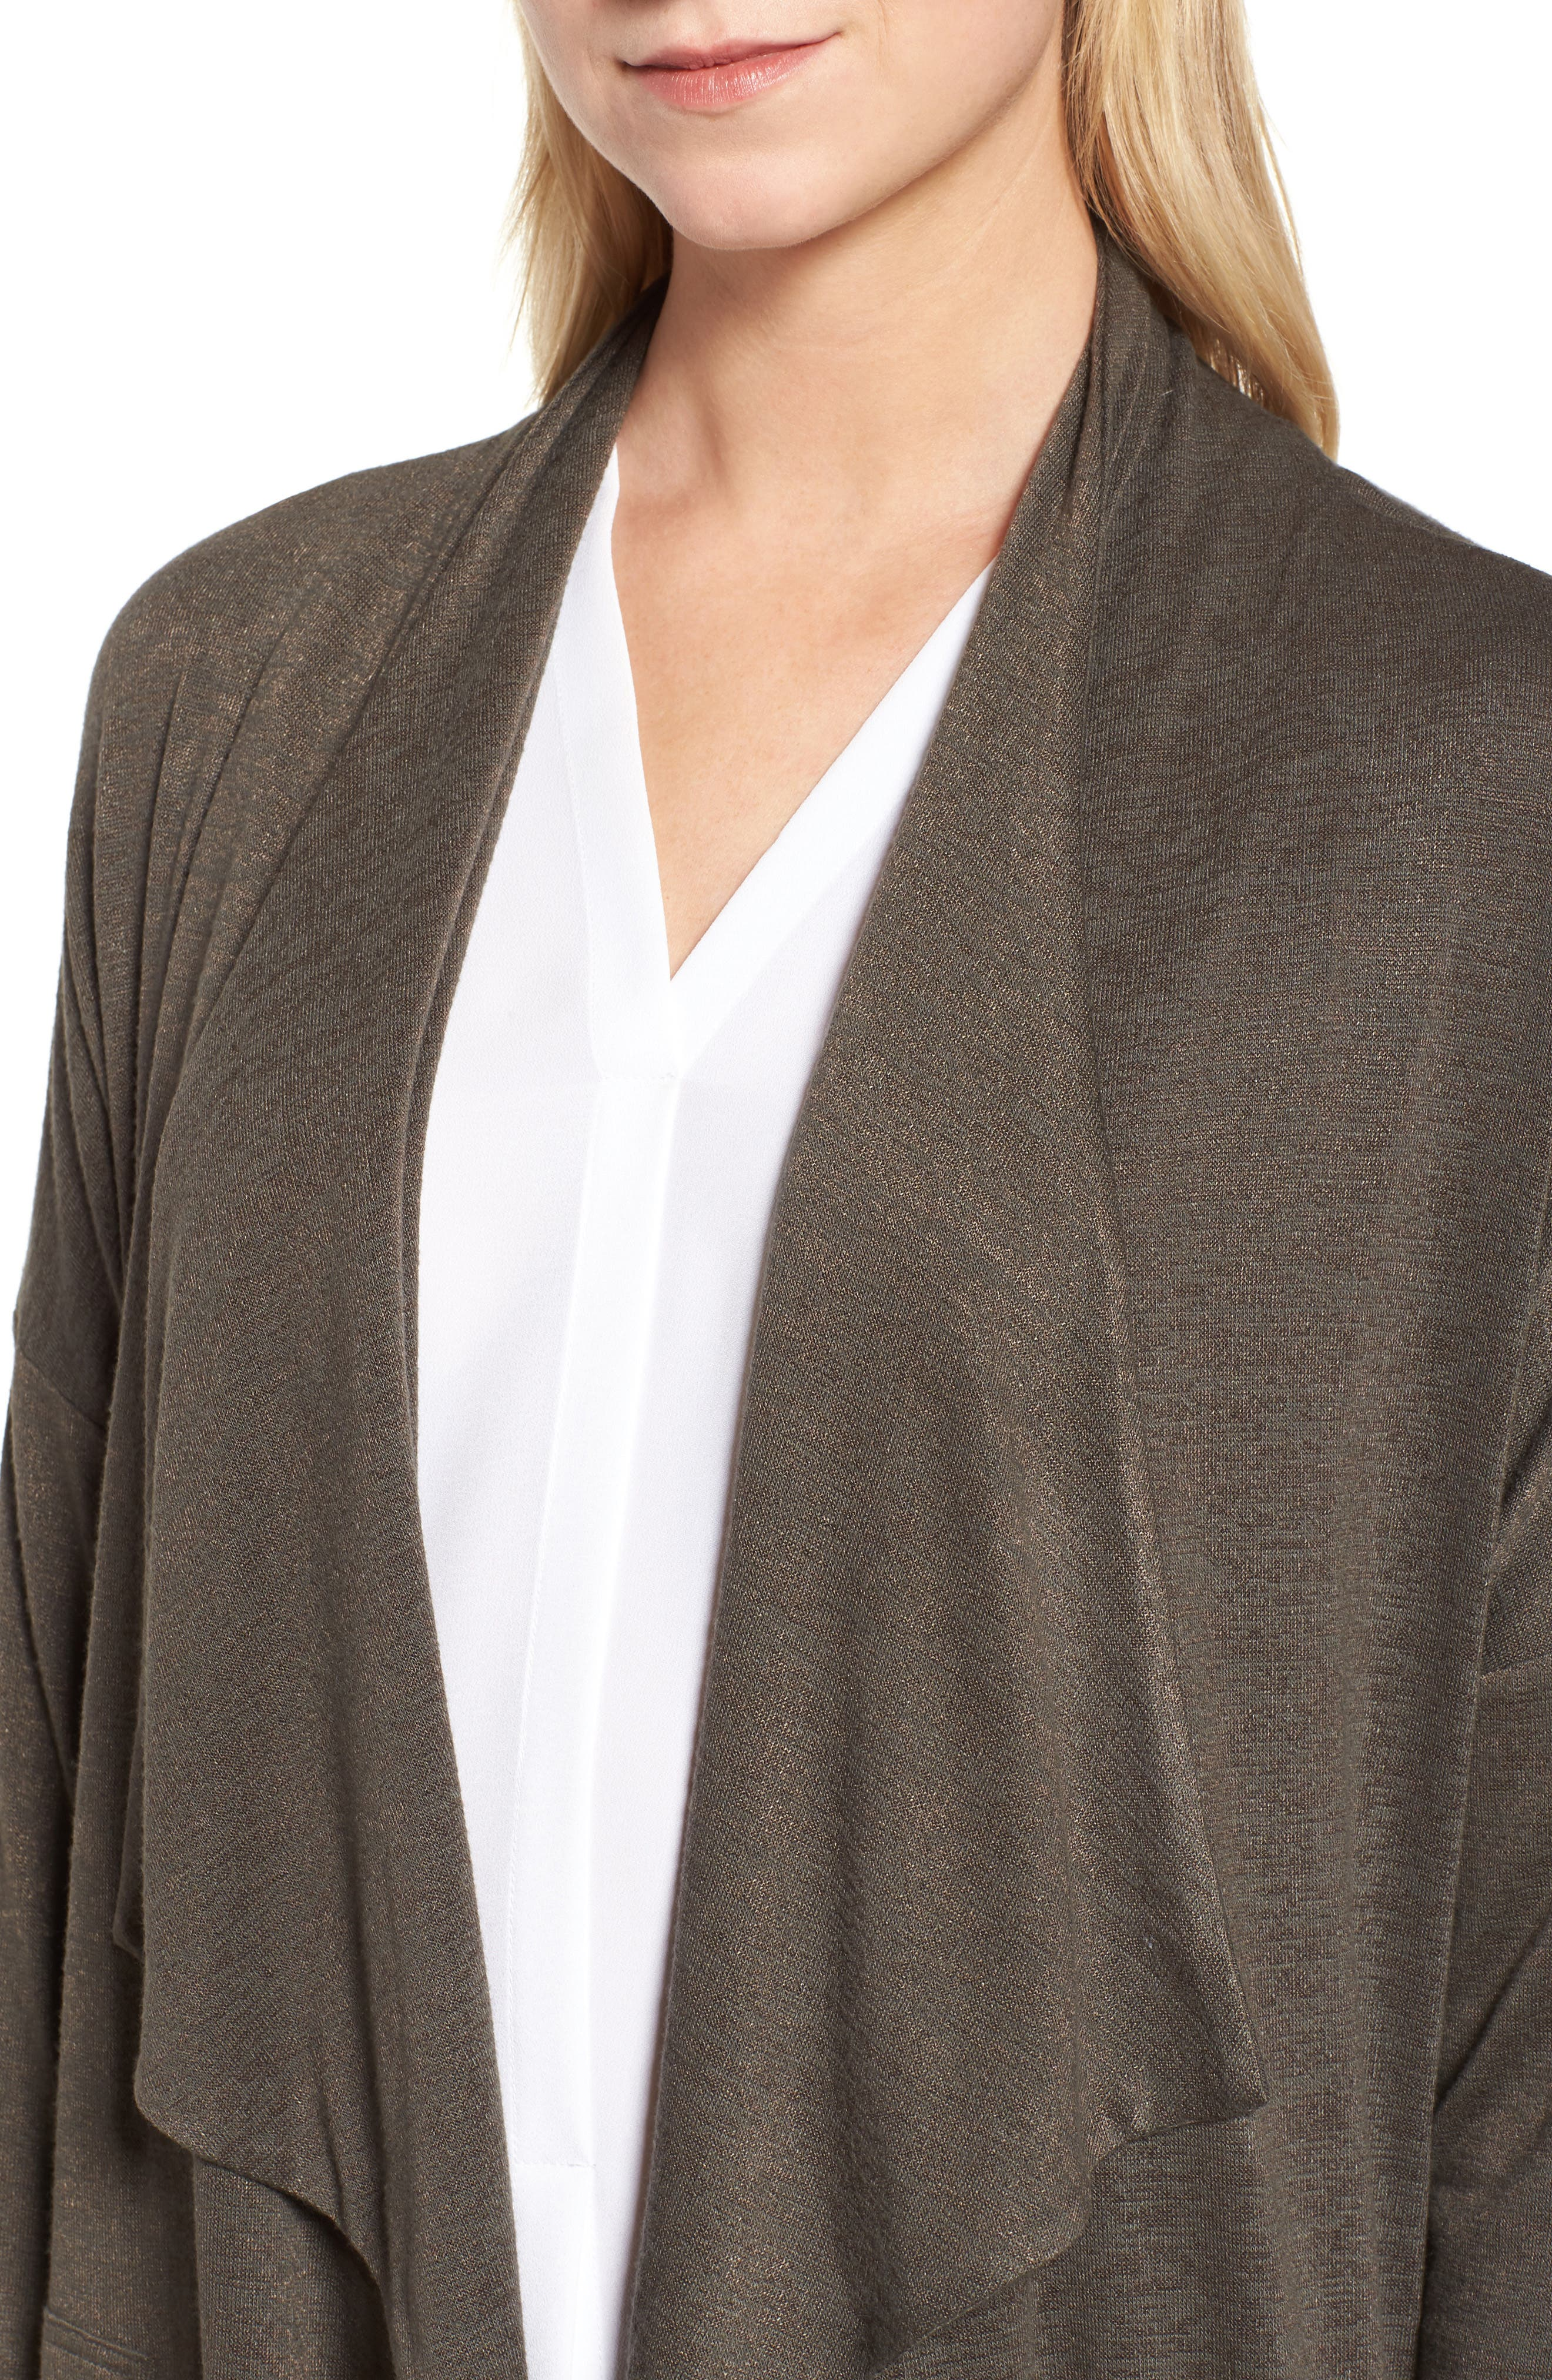 Every Occasion Drape Front Jacket,                             Alternate thumbnail 4, color,                             Terrene